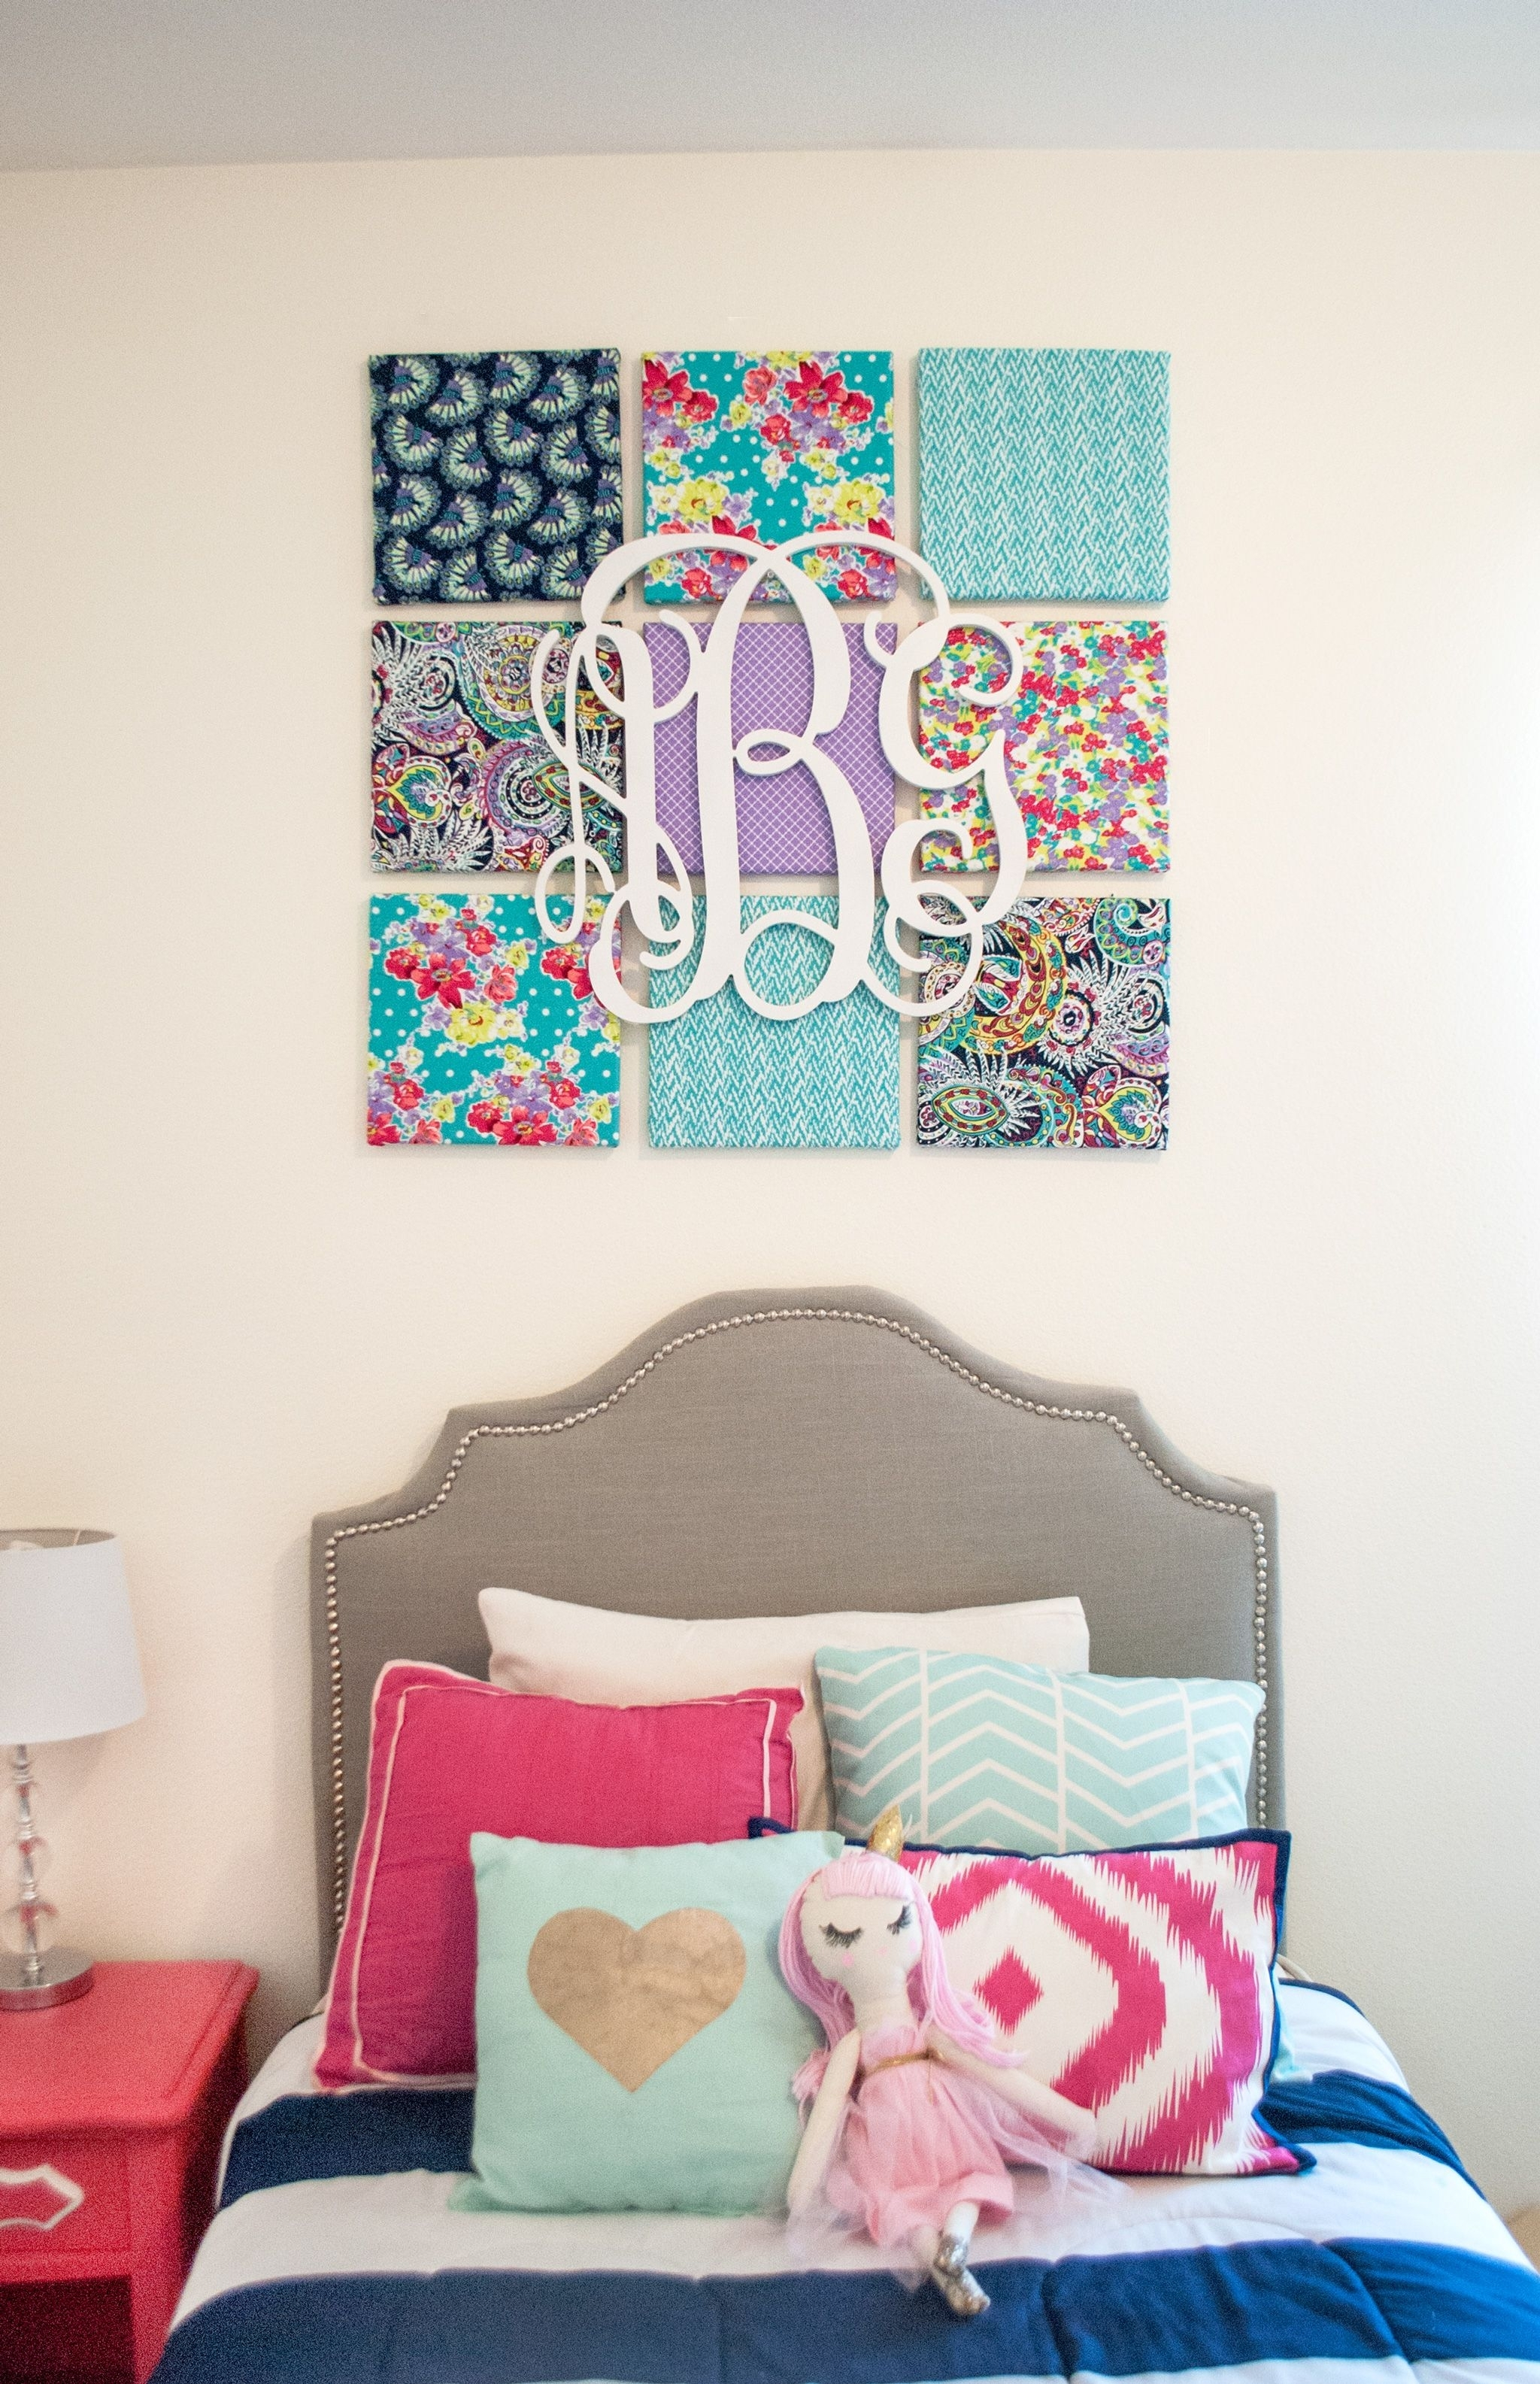 Diy Fabric Wall Art | Monogram Wall, Kids Rooms And Monograms Inside Most Up To Date Burlap Fabric Wall Art (View 4 of 15)